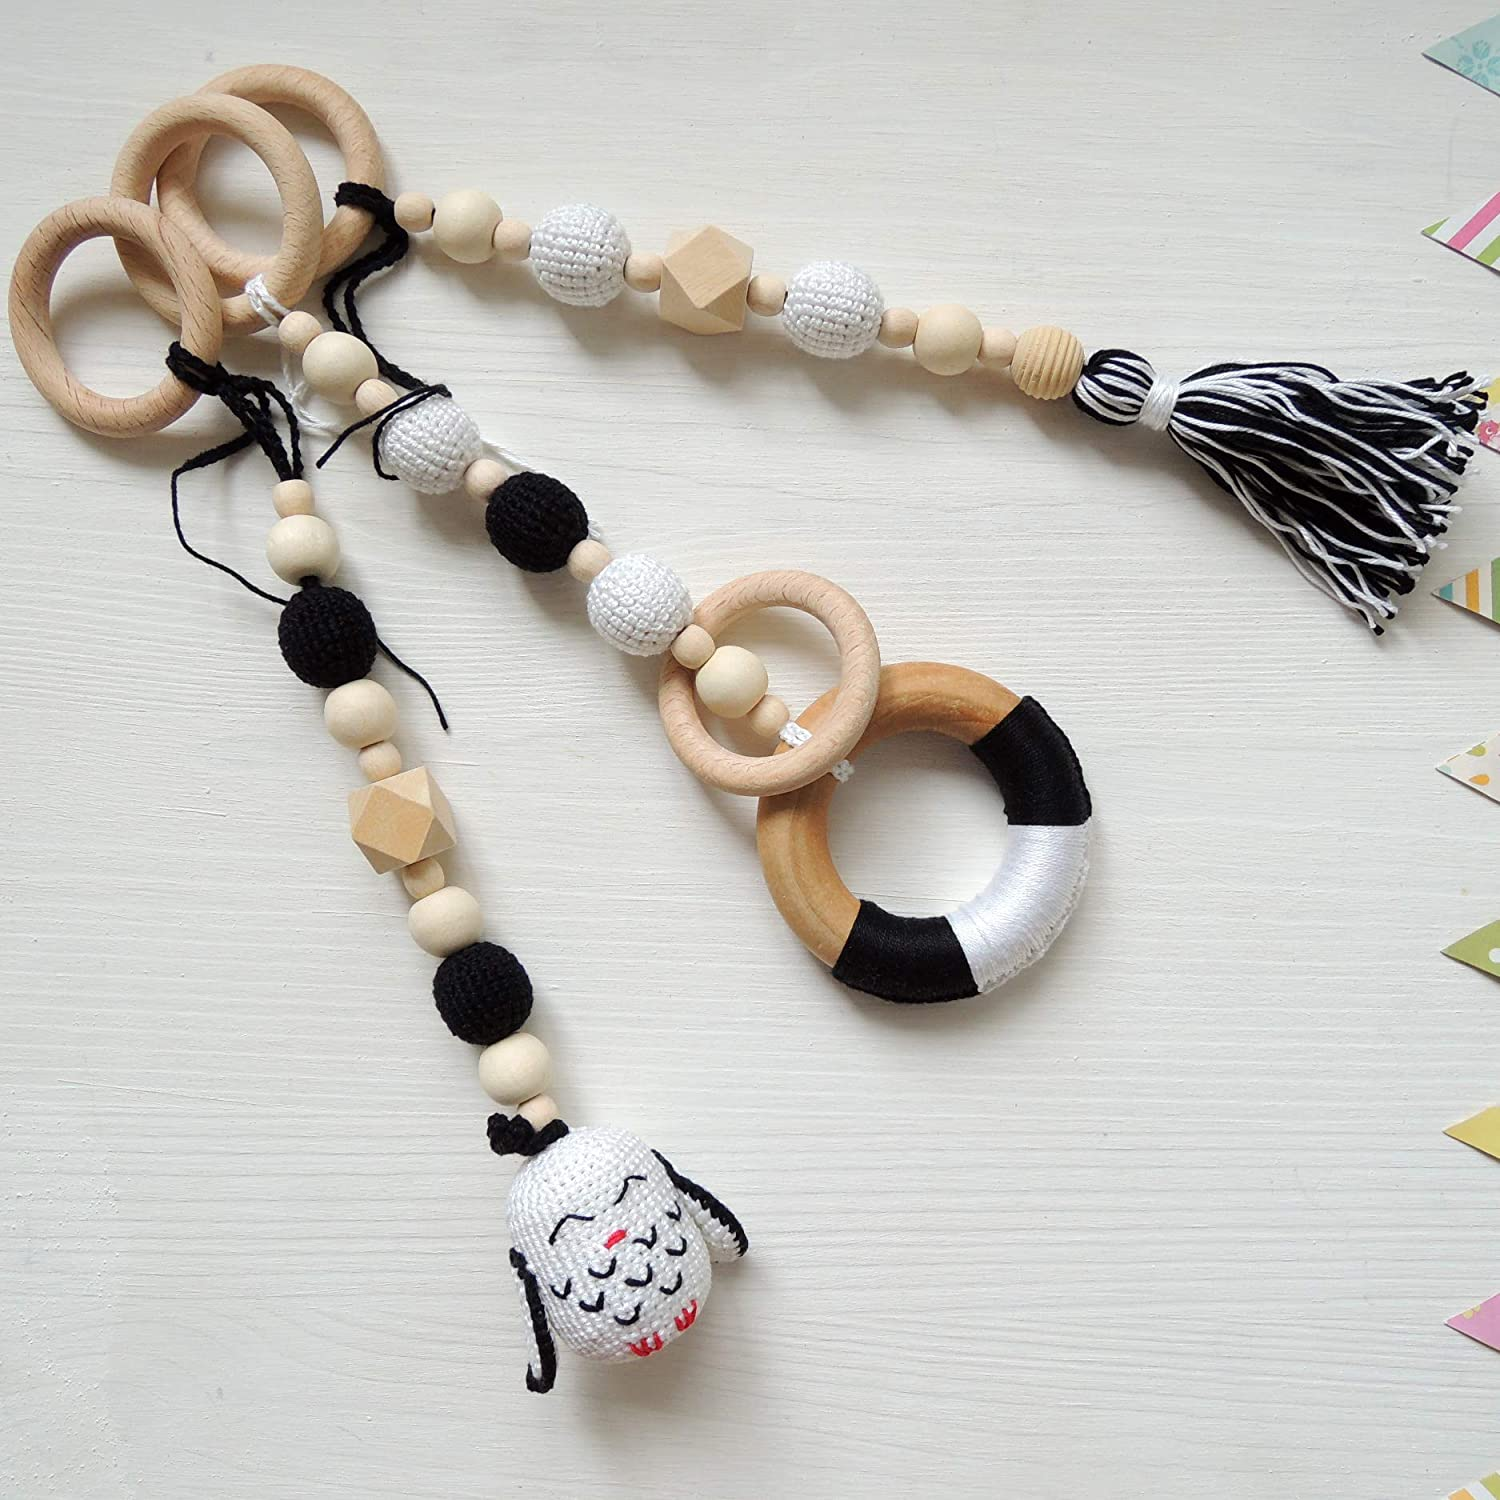 Set of 3 Hanging Toys for Wooden Baby Gym, Black and White Stroller Toy, Pram Chain, Car Seat Accessories, Monochrome Baby Mobile, Rattle Animal Bird, Teething Ring, Shower Gift for Girl, Boy or Twins